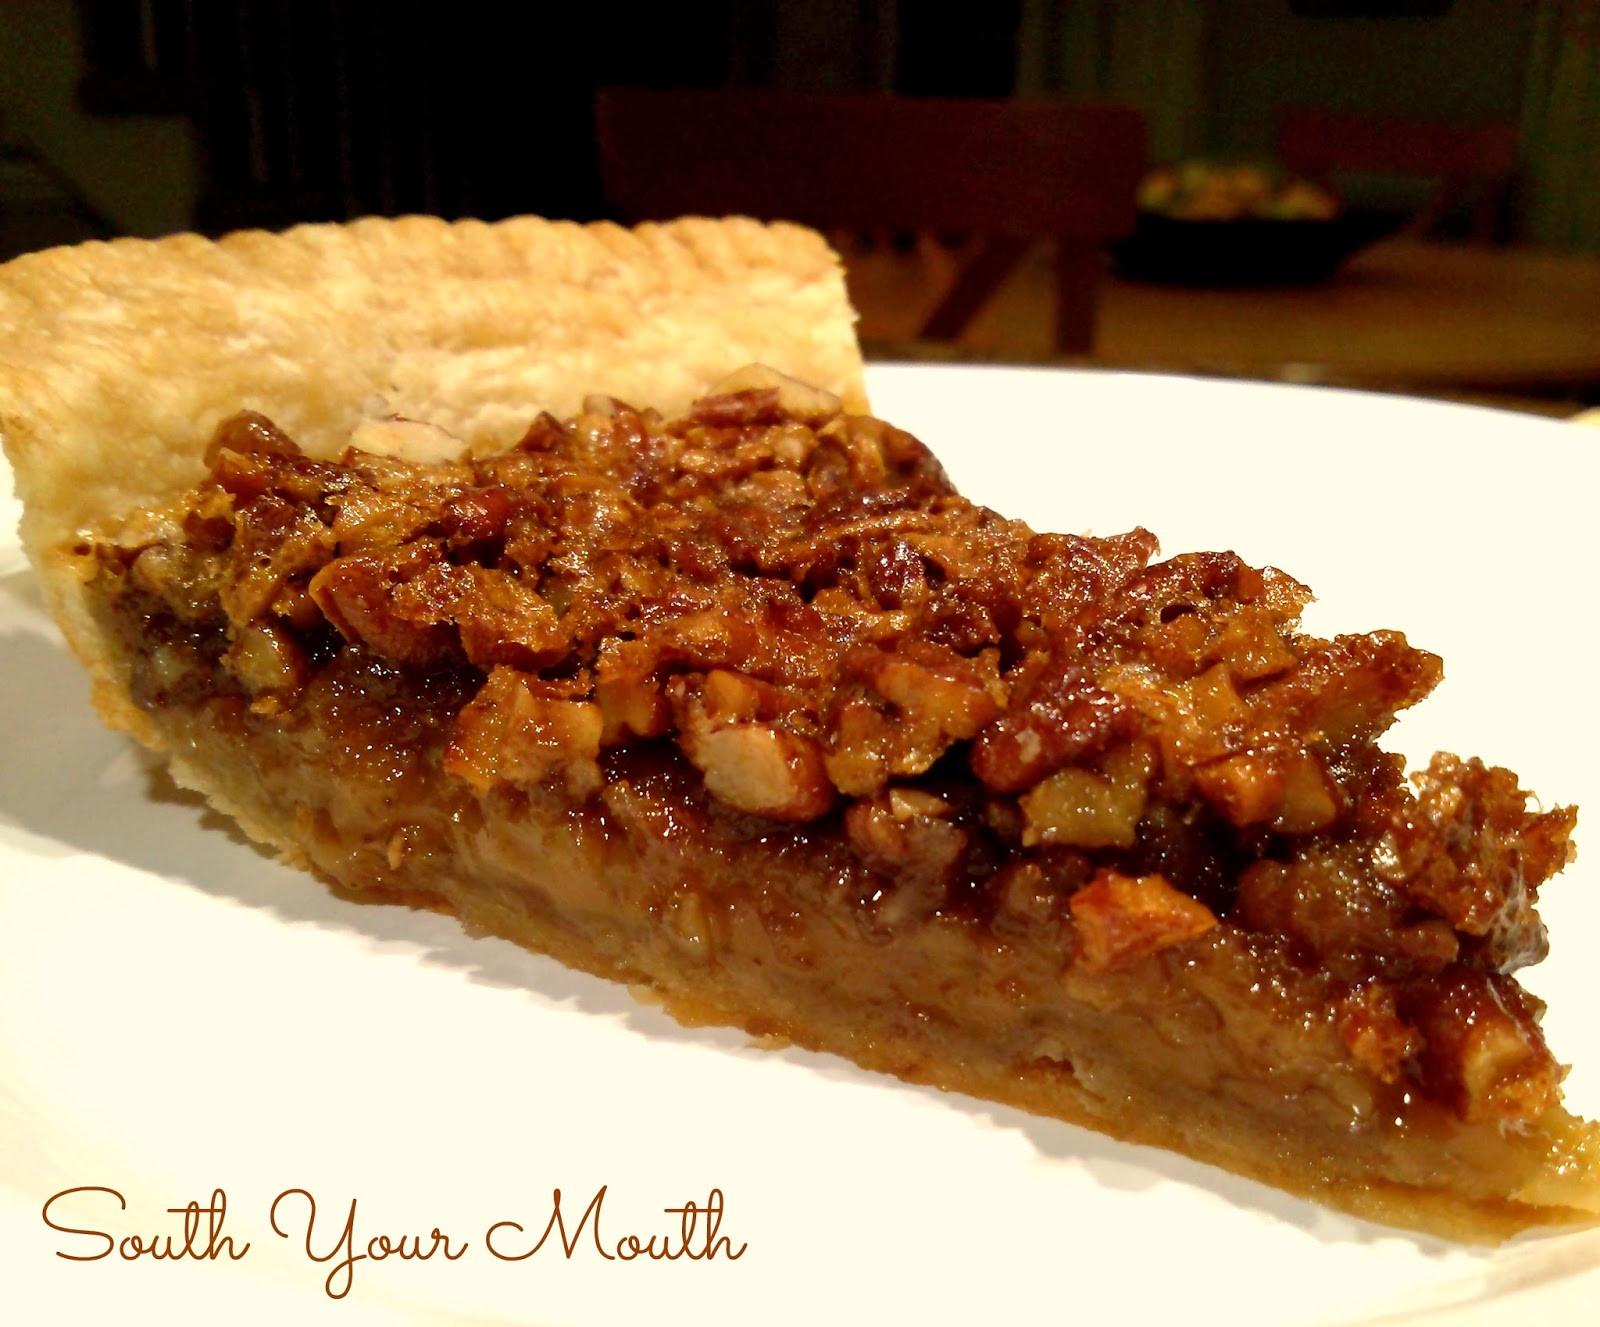 M&Ms Pecan Pie  South Your Mouth Classic Pecan Pie